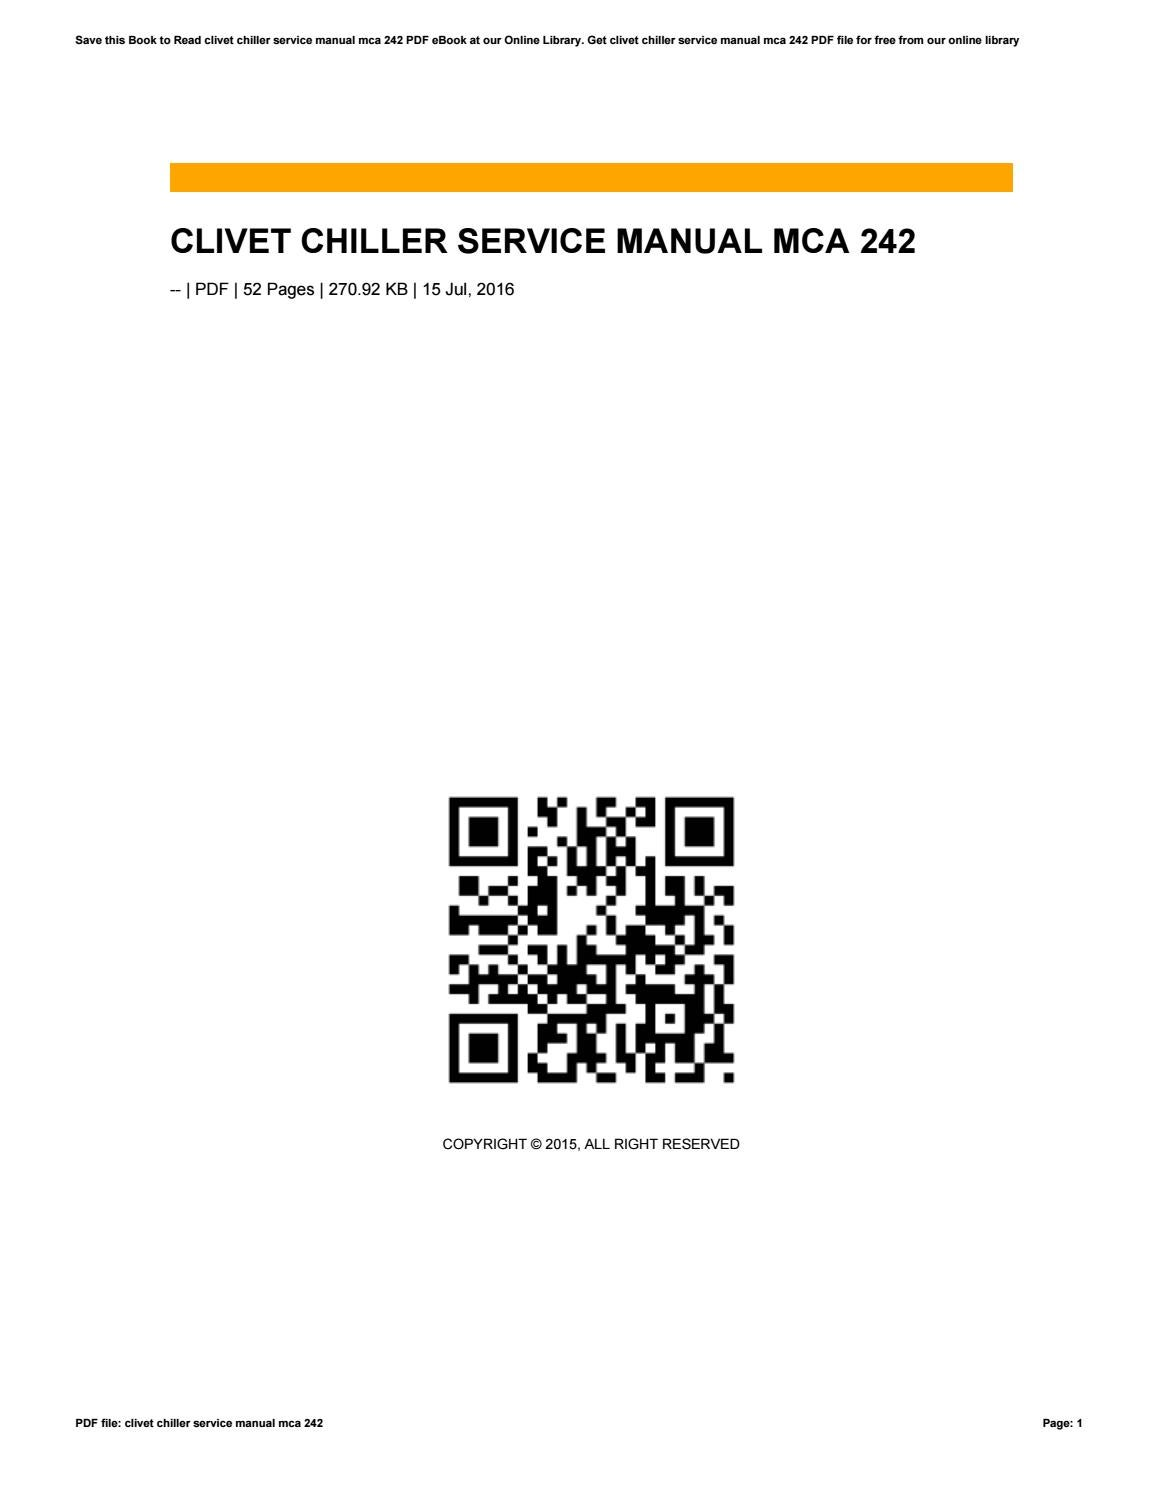 Clivet Chiller Service Manual Mca 242 By Wierie99